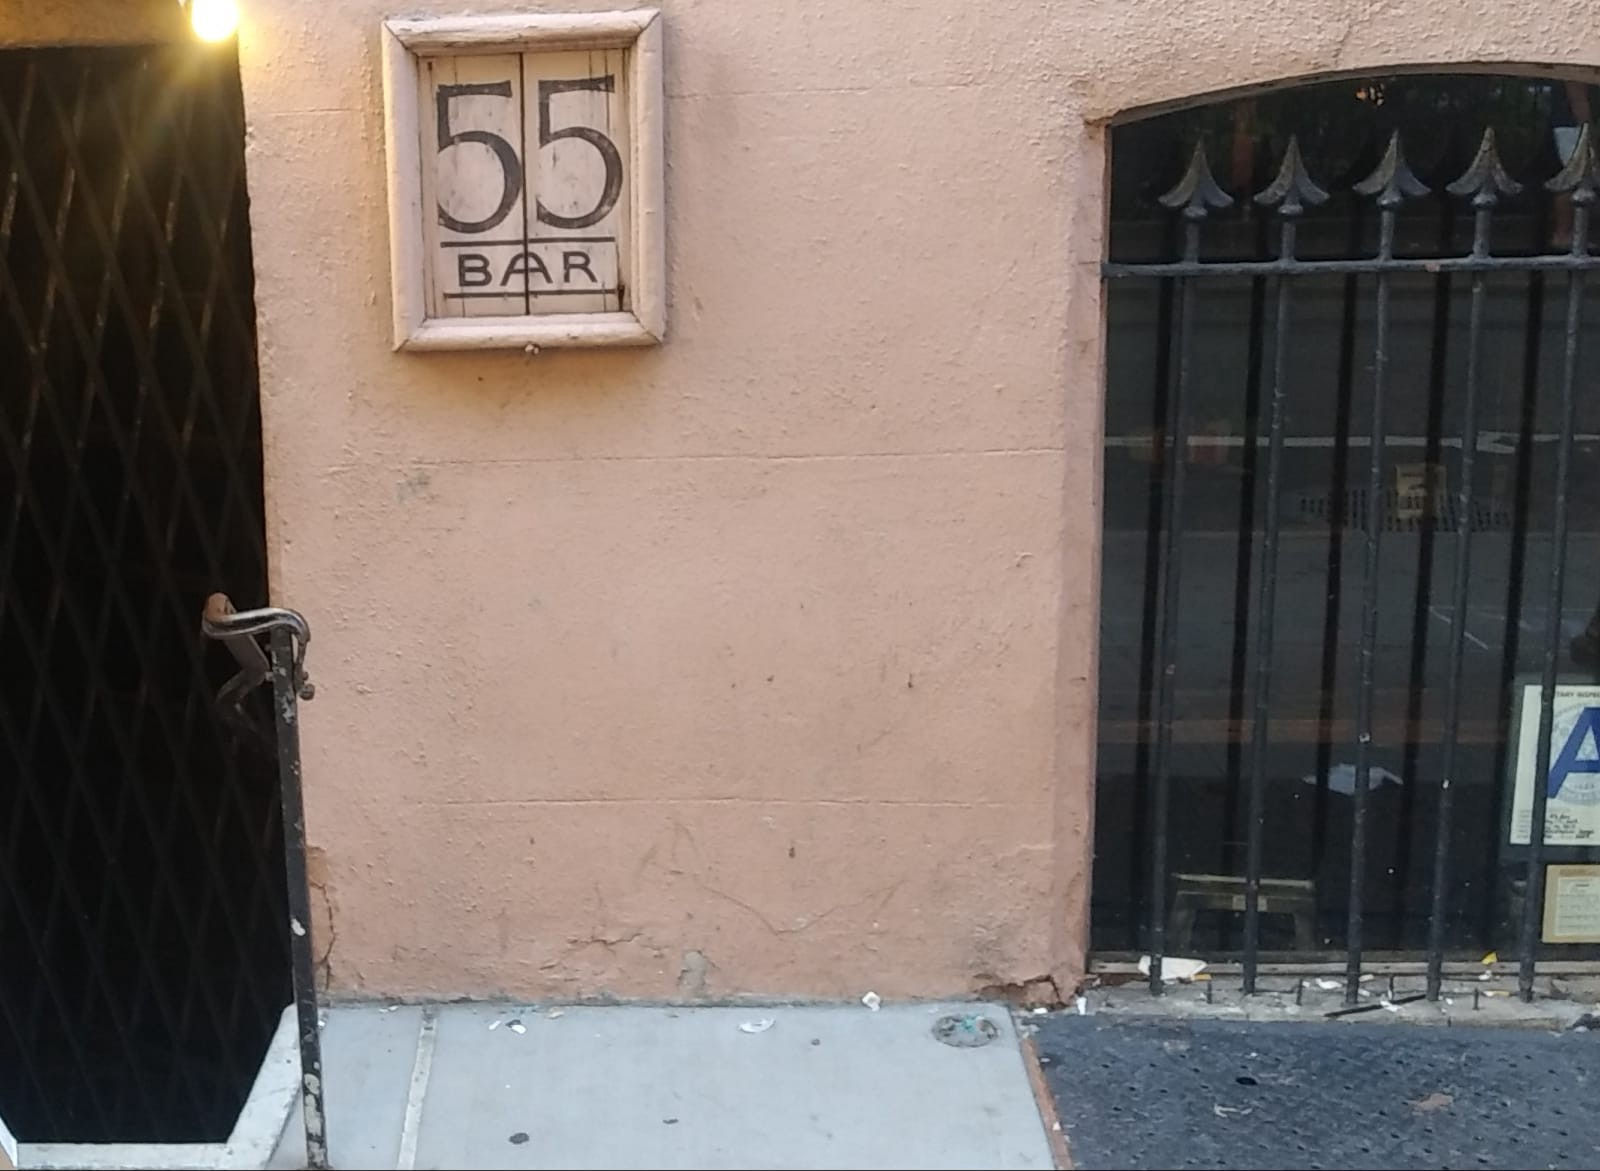 The iconic 55Bar has been closed since the beginning of the pandemic